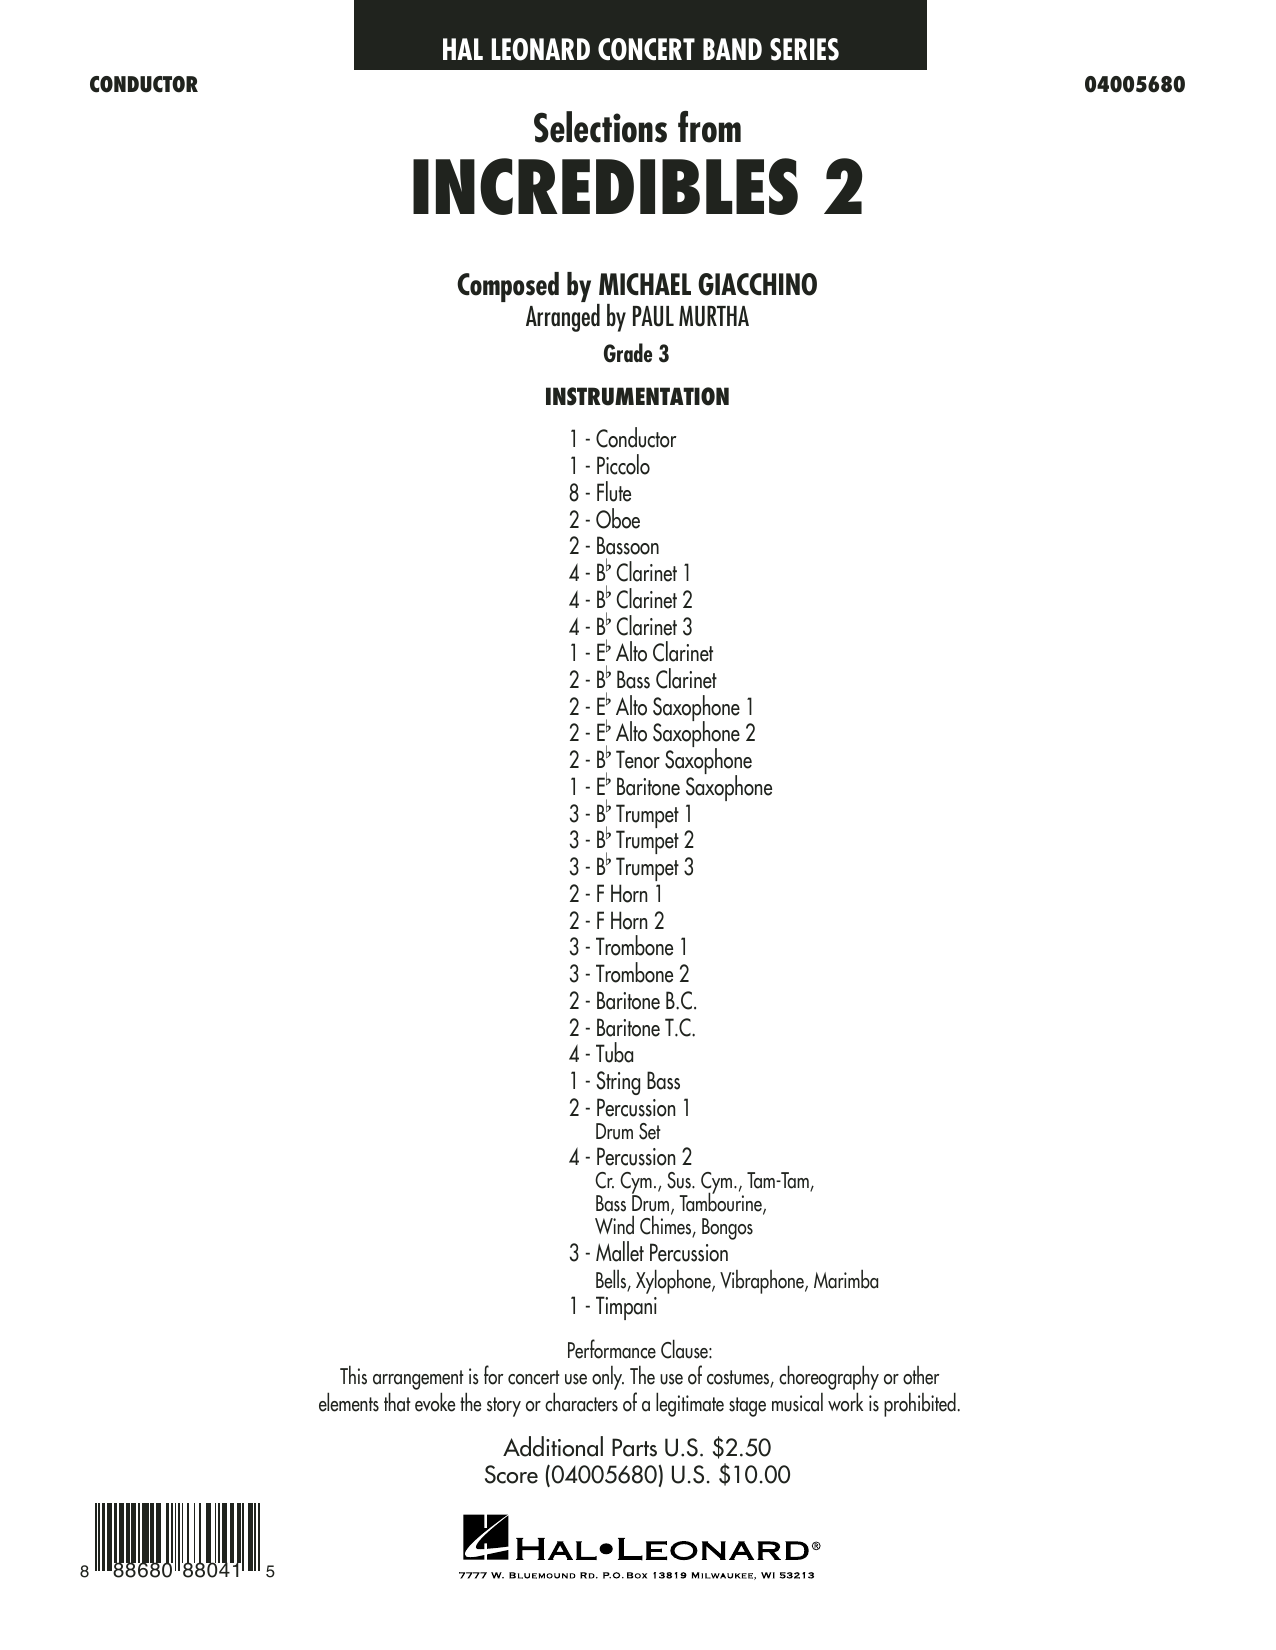 Selections from Incredibles 2 (arr. Paul Murtha) - Conductor Score (Full Score) (Concert Band)